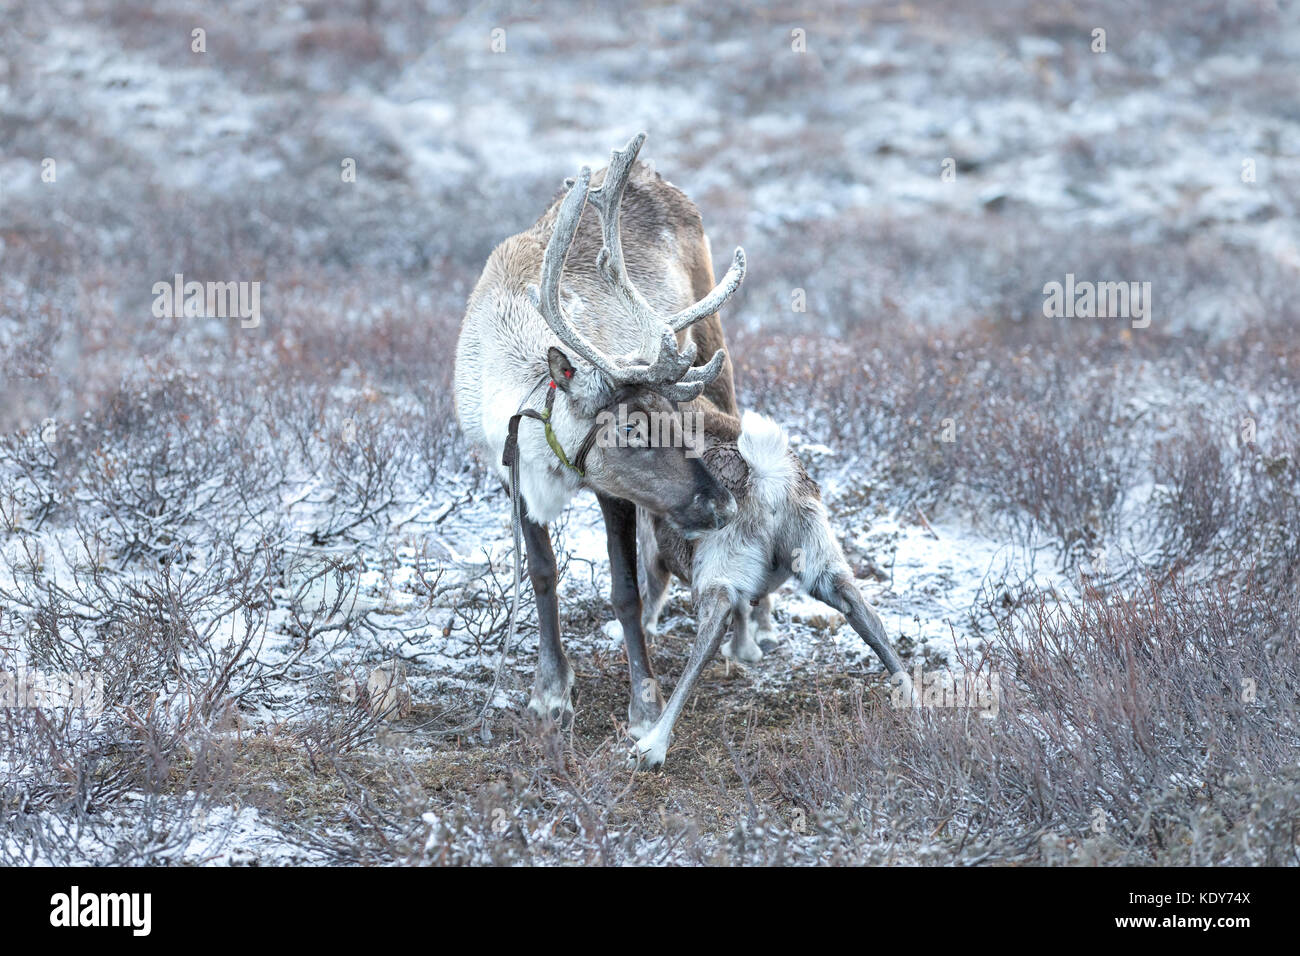 Portrait of a baby reindeer suckling on its mother. Khuvsgol, Mongolia. - Stock Image